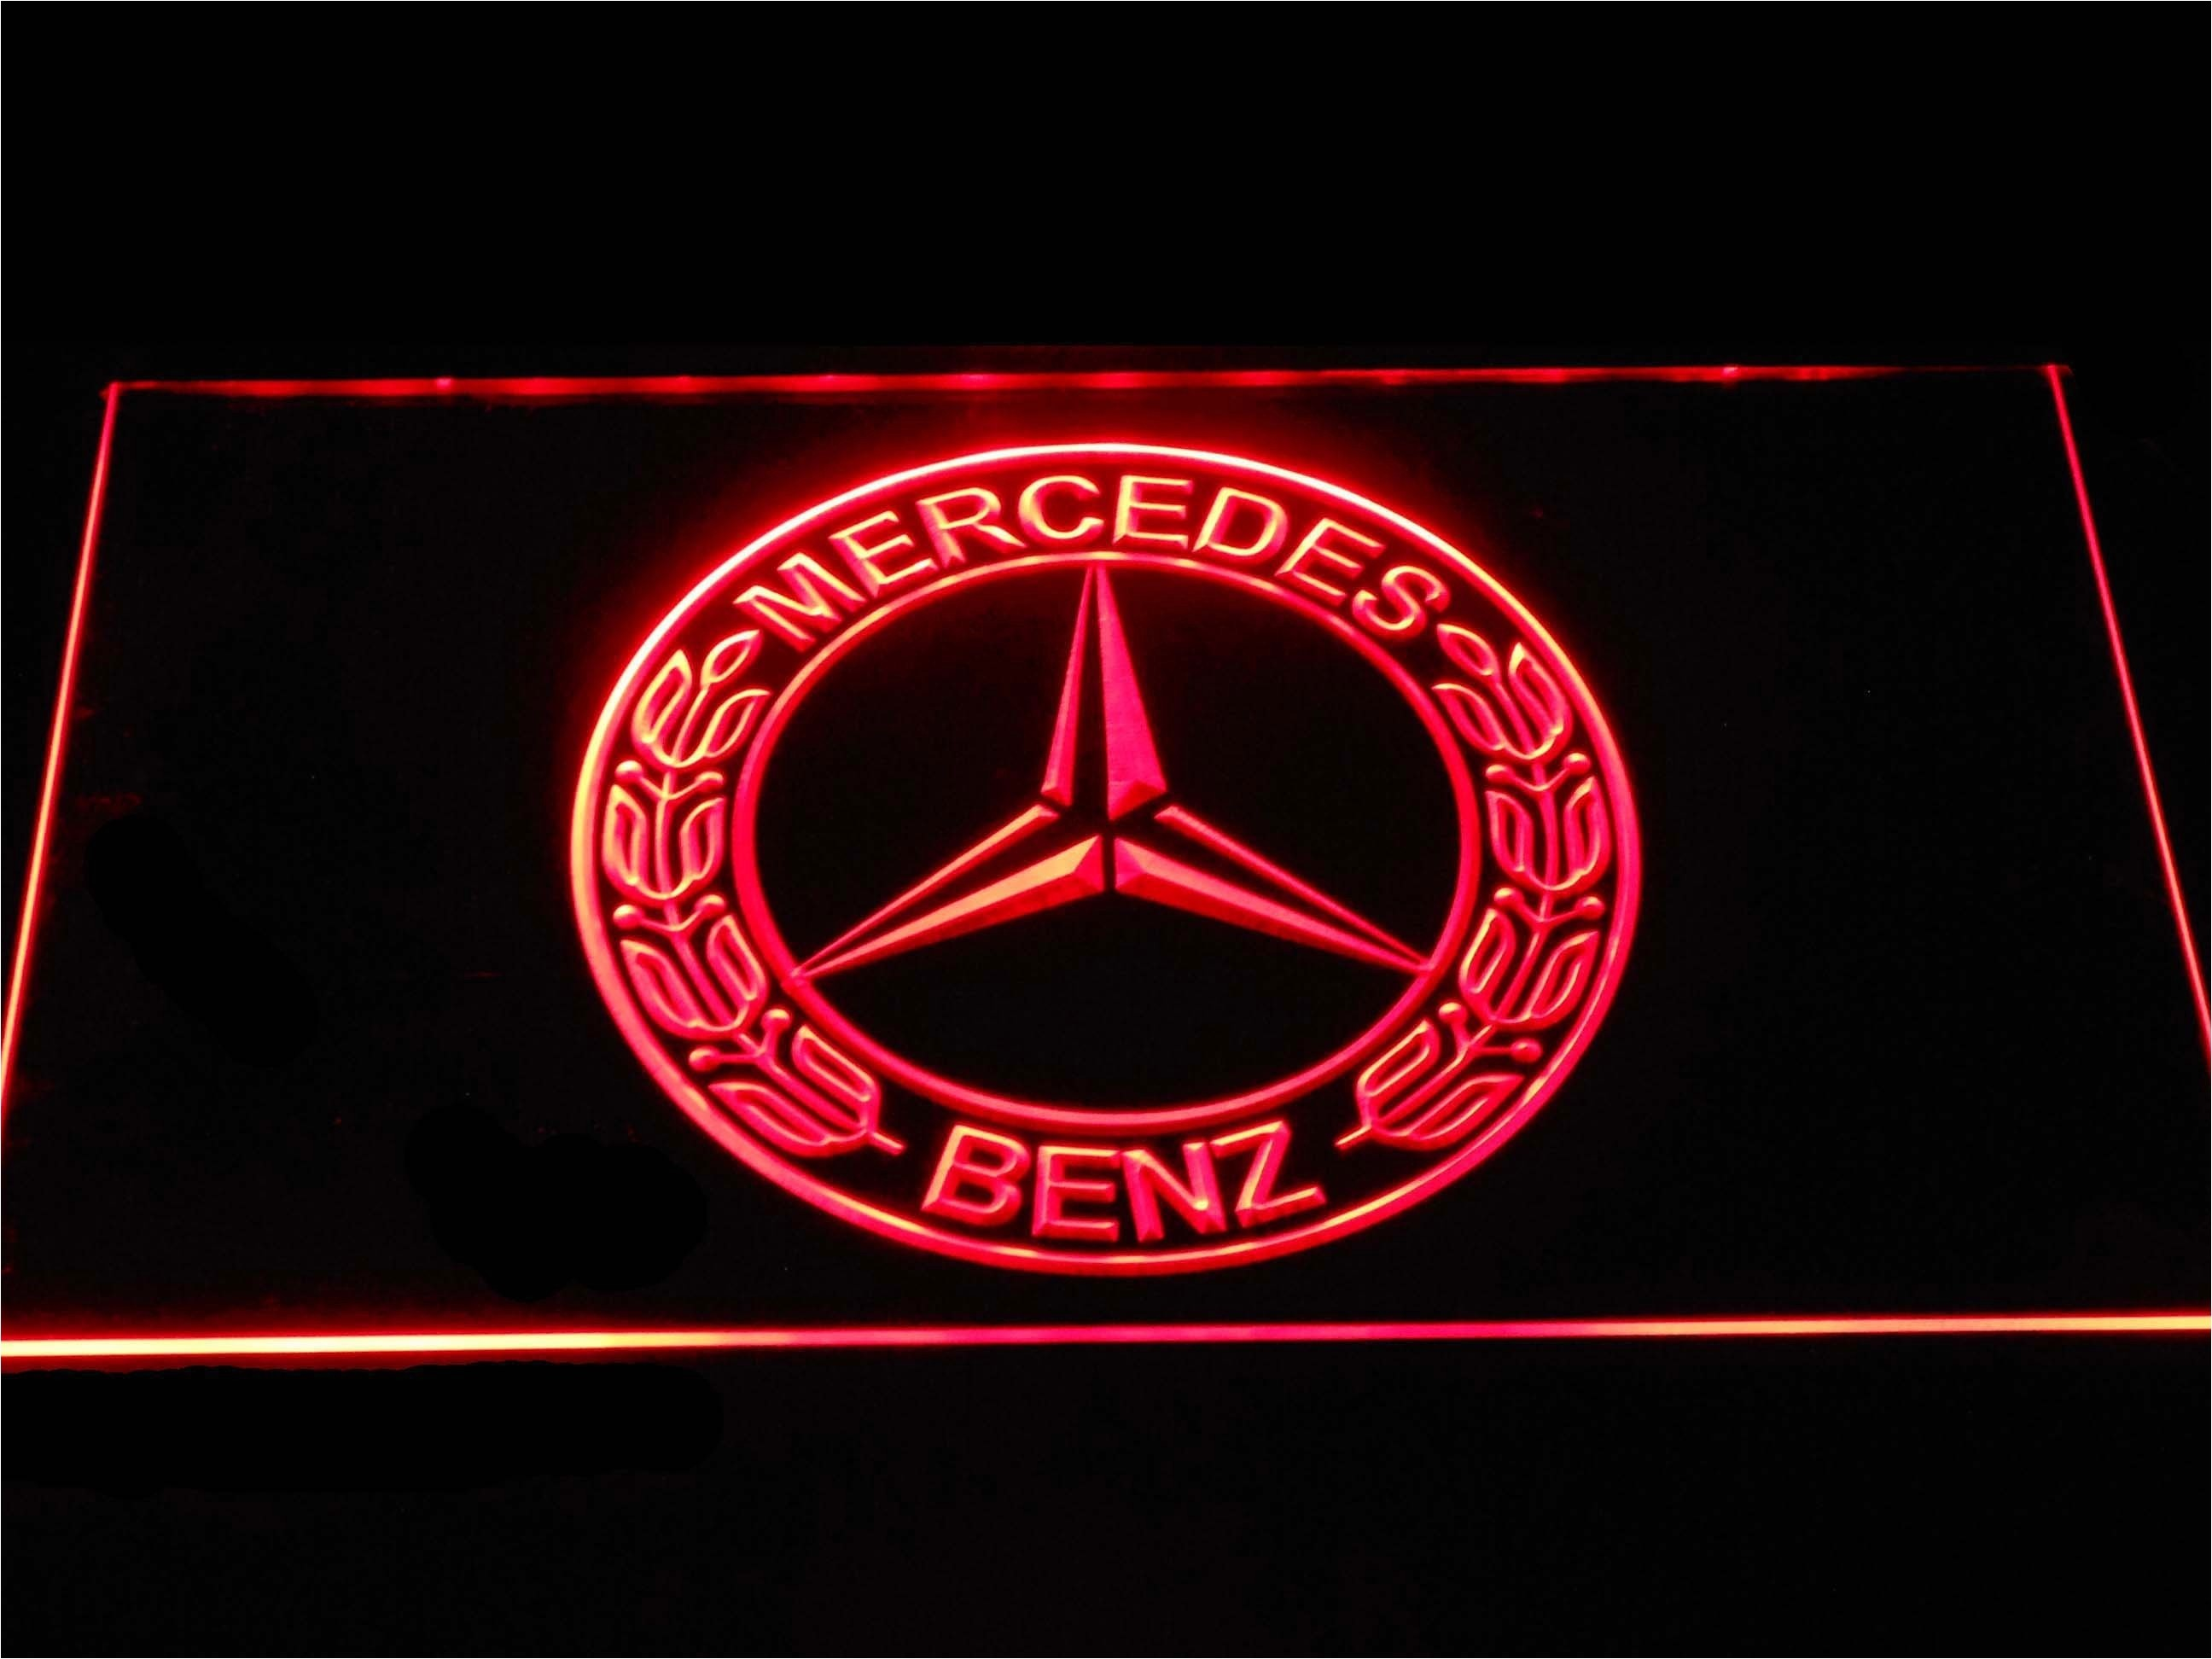 2592x1944 Mercedes Logo History Of the Mercedes Benz Old Logo Led Neon Sign Of Mercedes  Logo Example